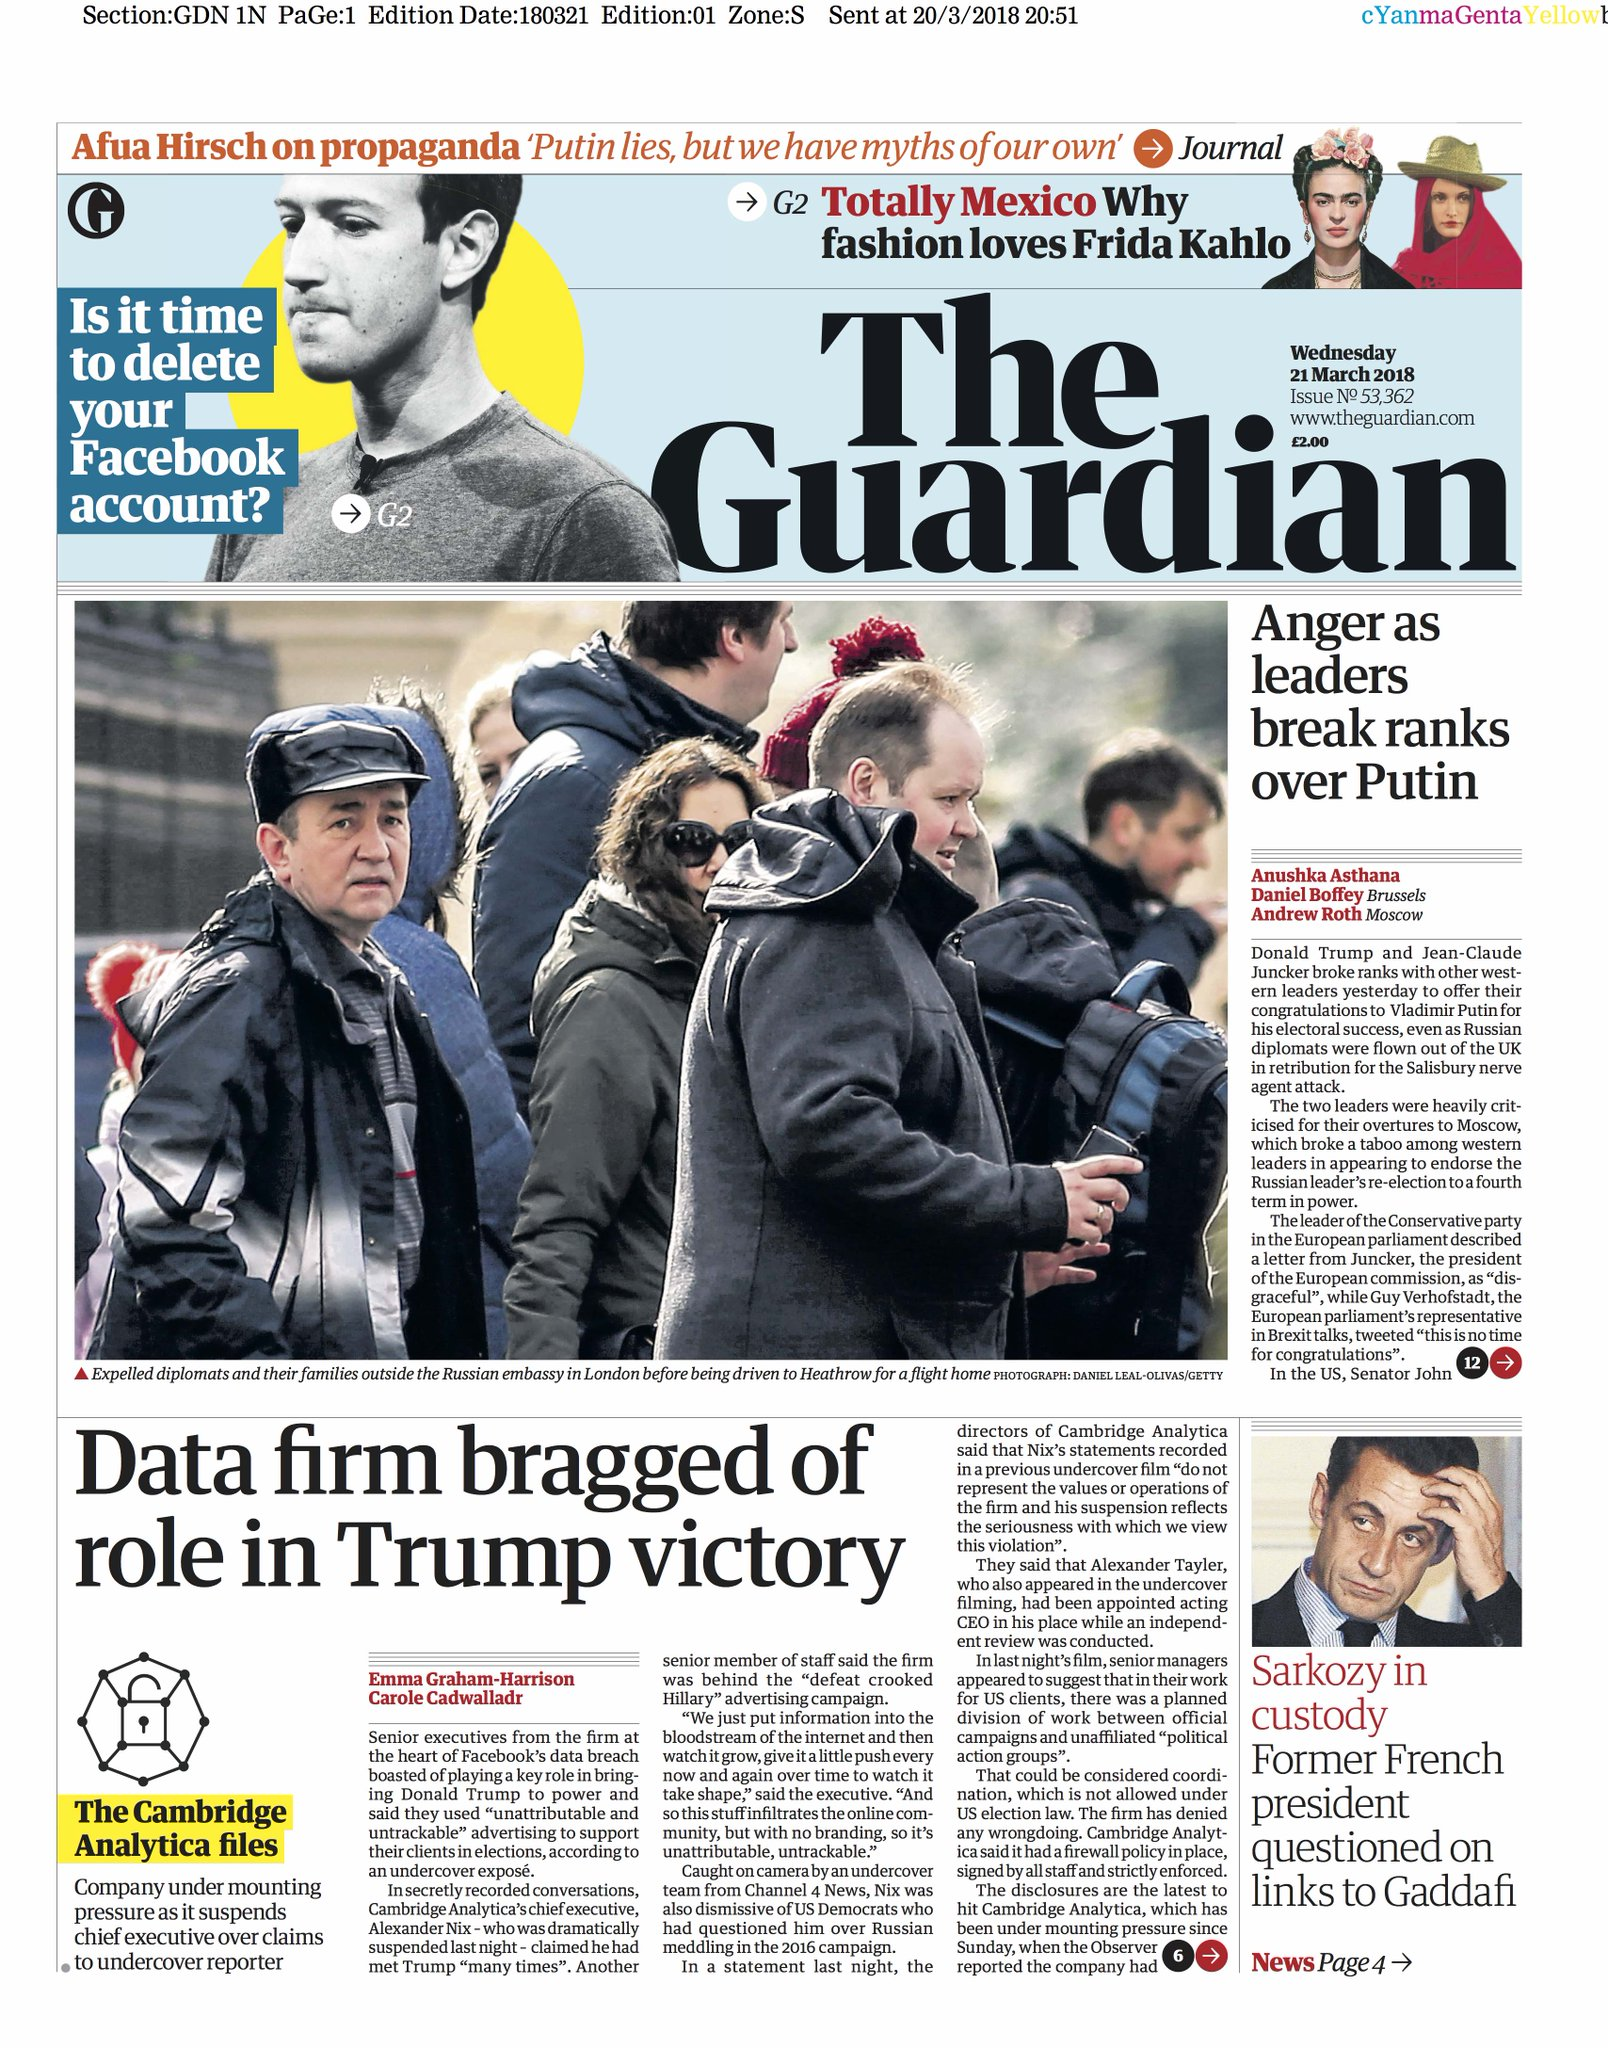 Guardian front page, Wednesday 21 March 2018: Data firm bragged of role in Trump victory https://t.co/KyEZpAGTOe